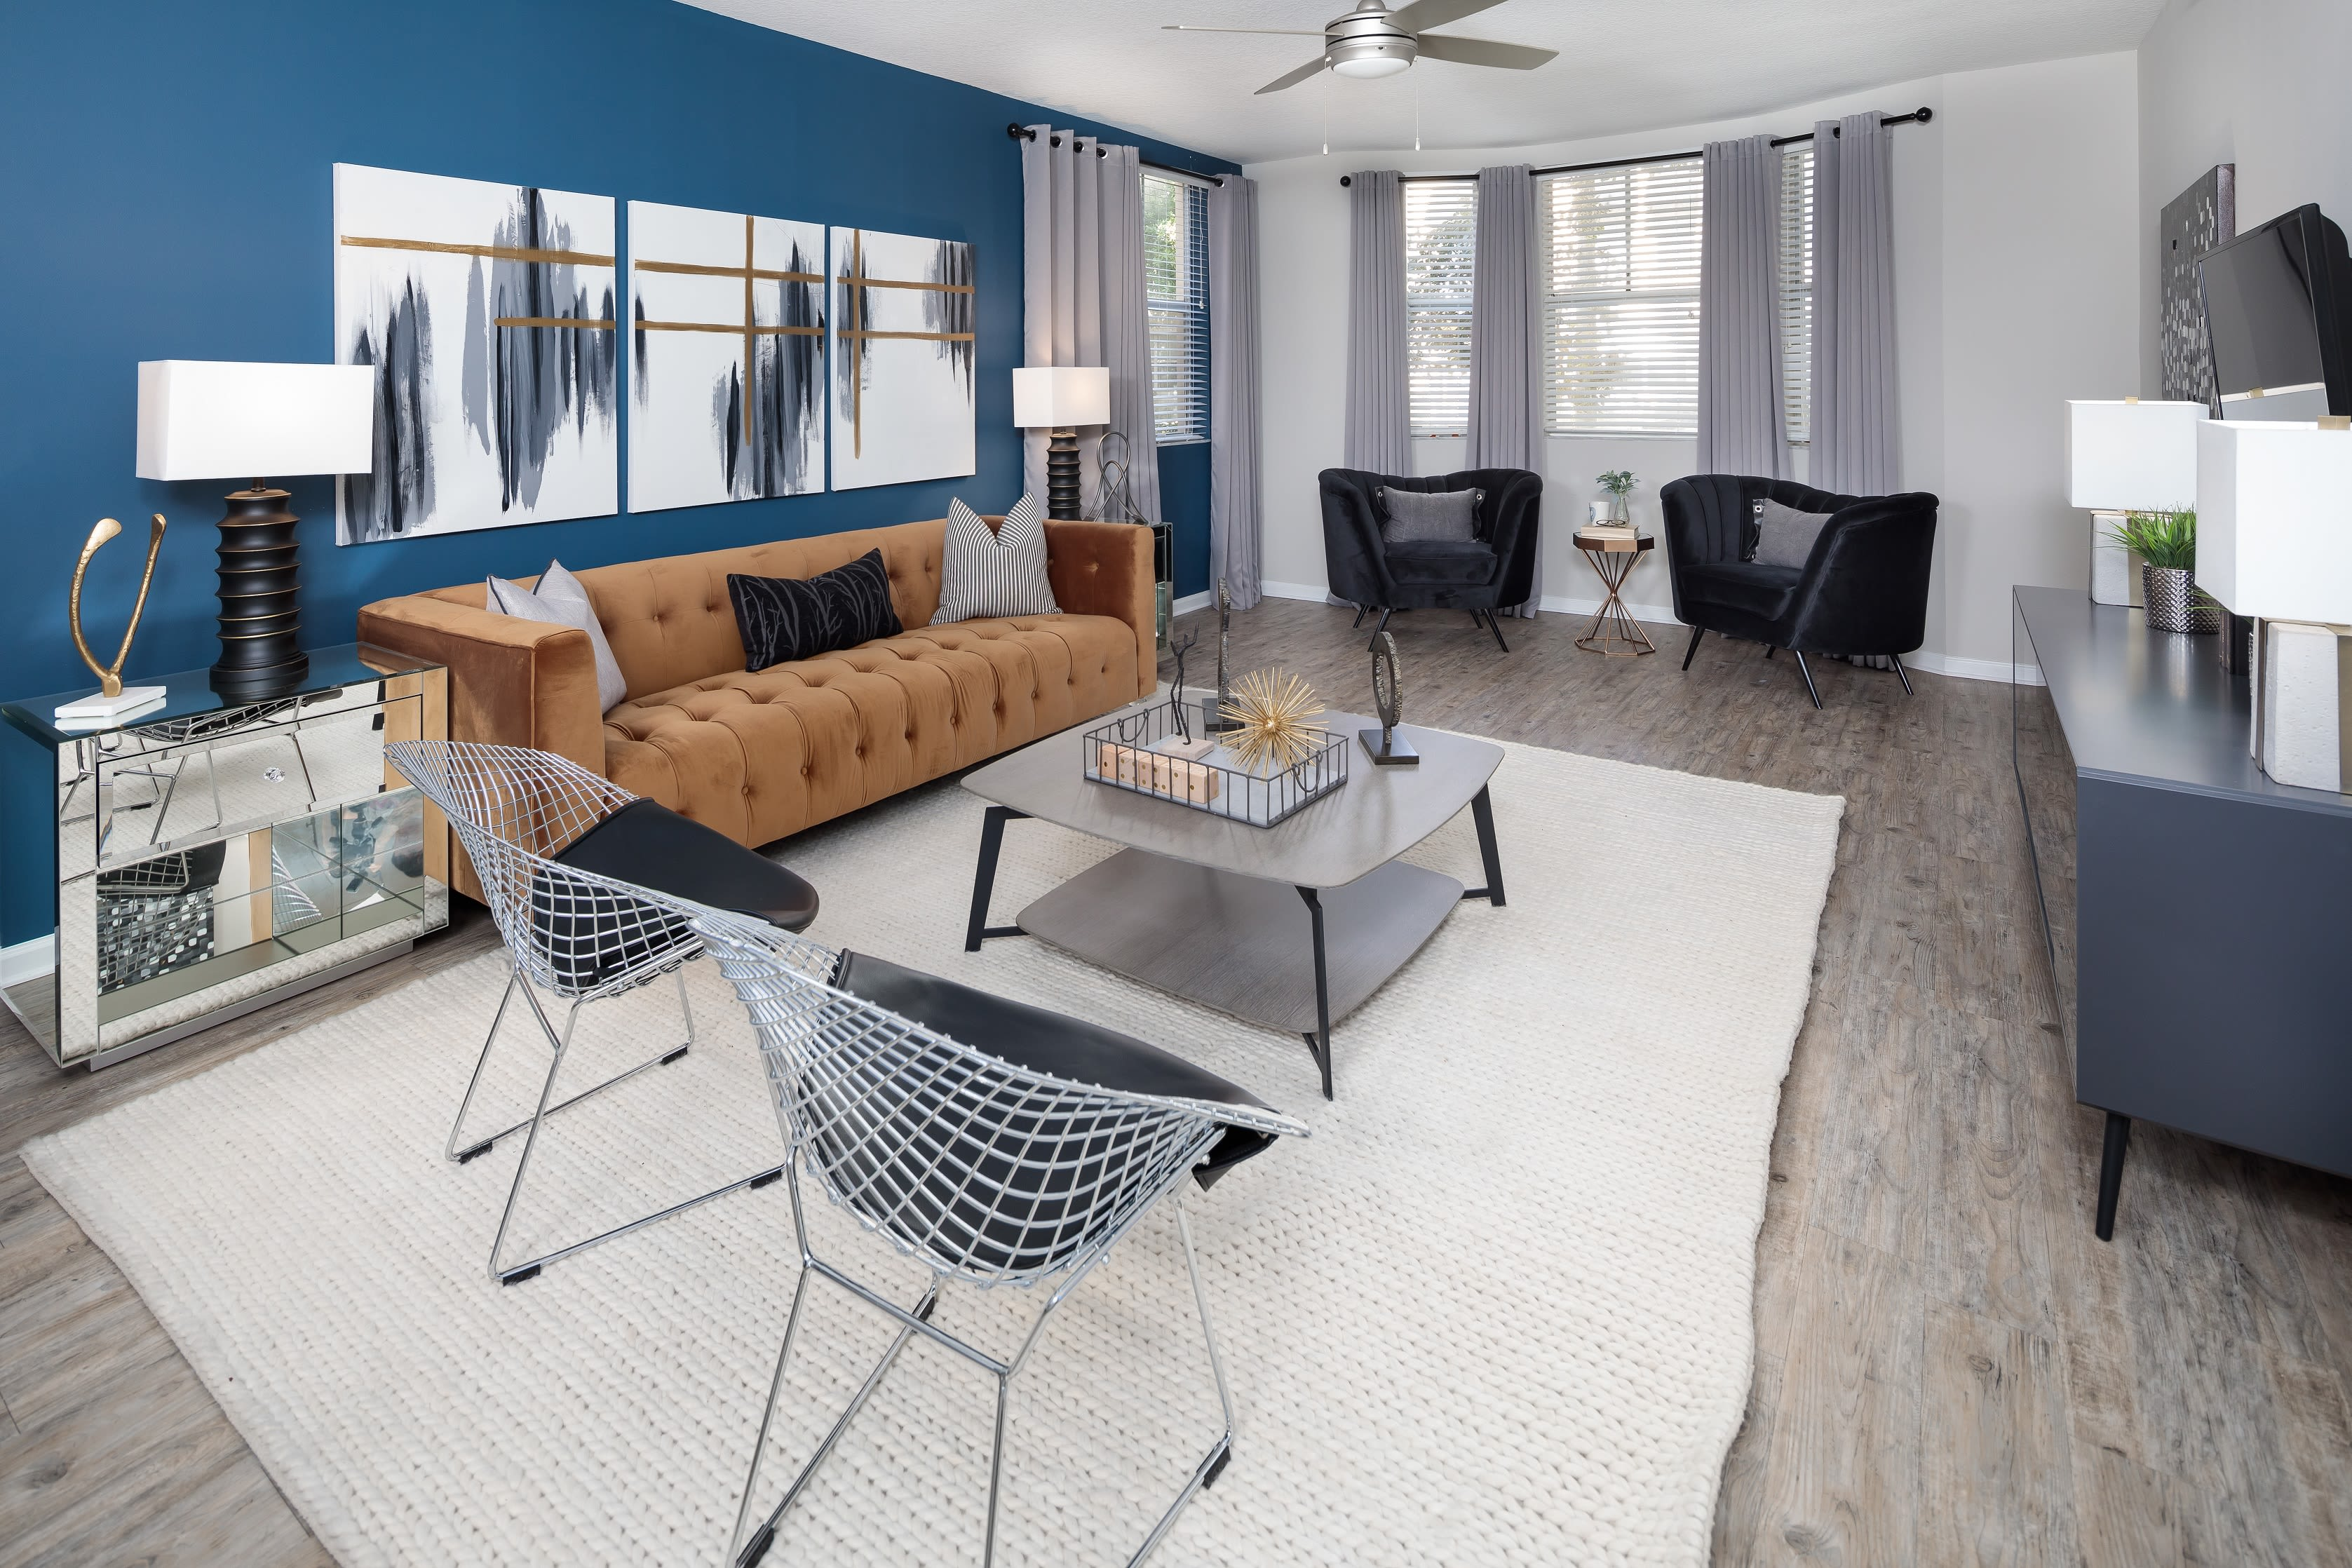 Well-decorated open-concept living space in a model home at The Pearl in Ft Lauderdale, Florida